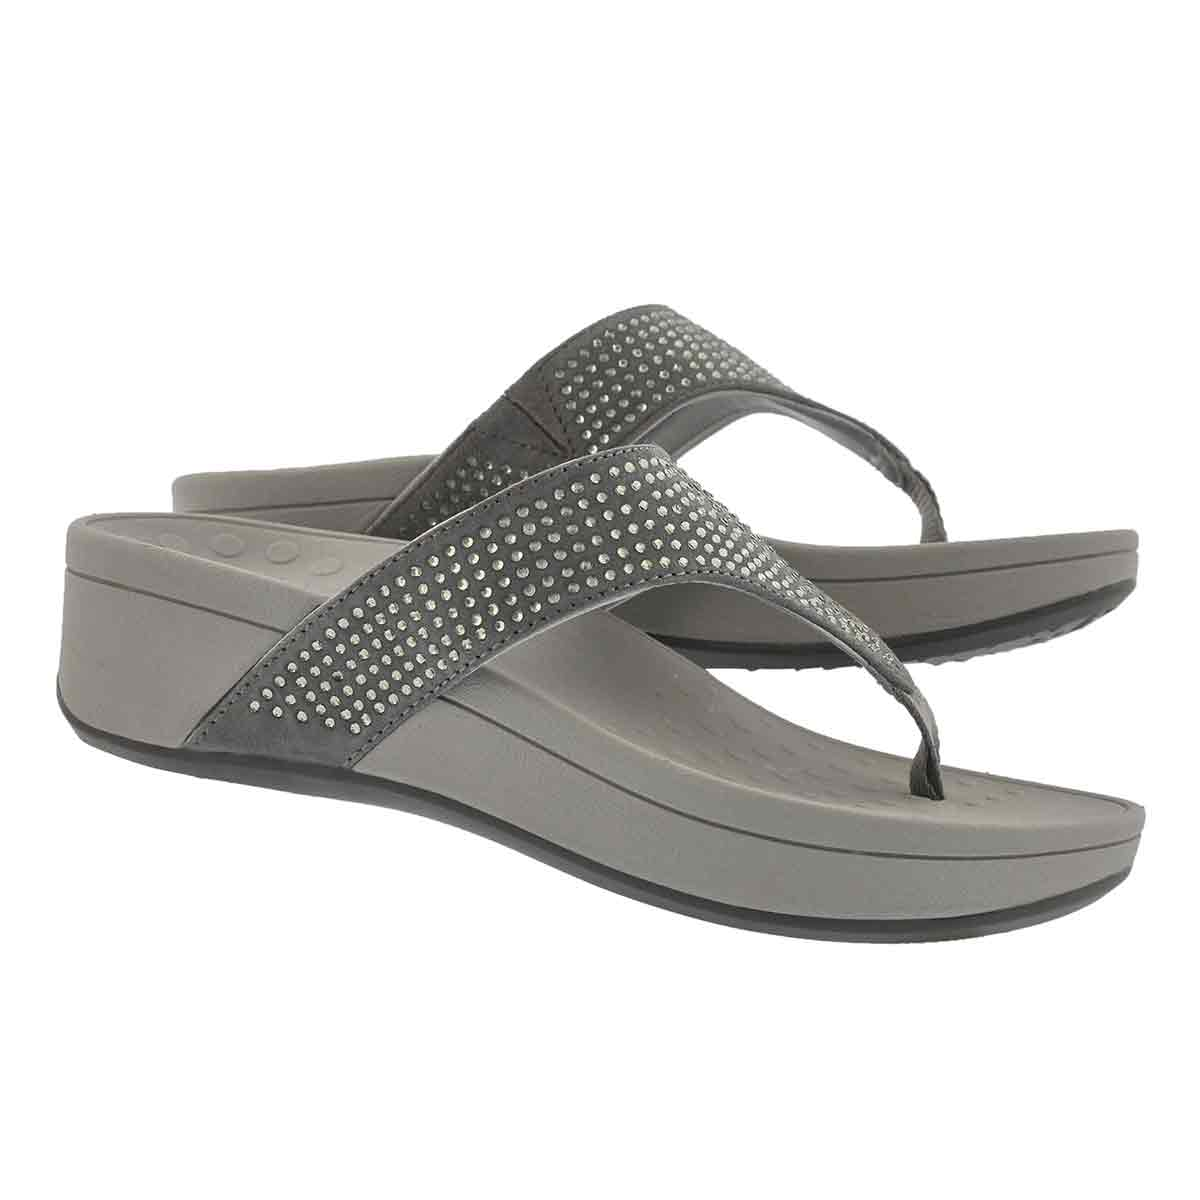 Lds Naples pewter arch support wdg sndl